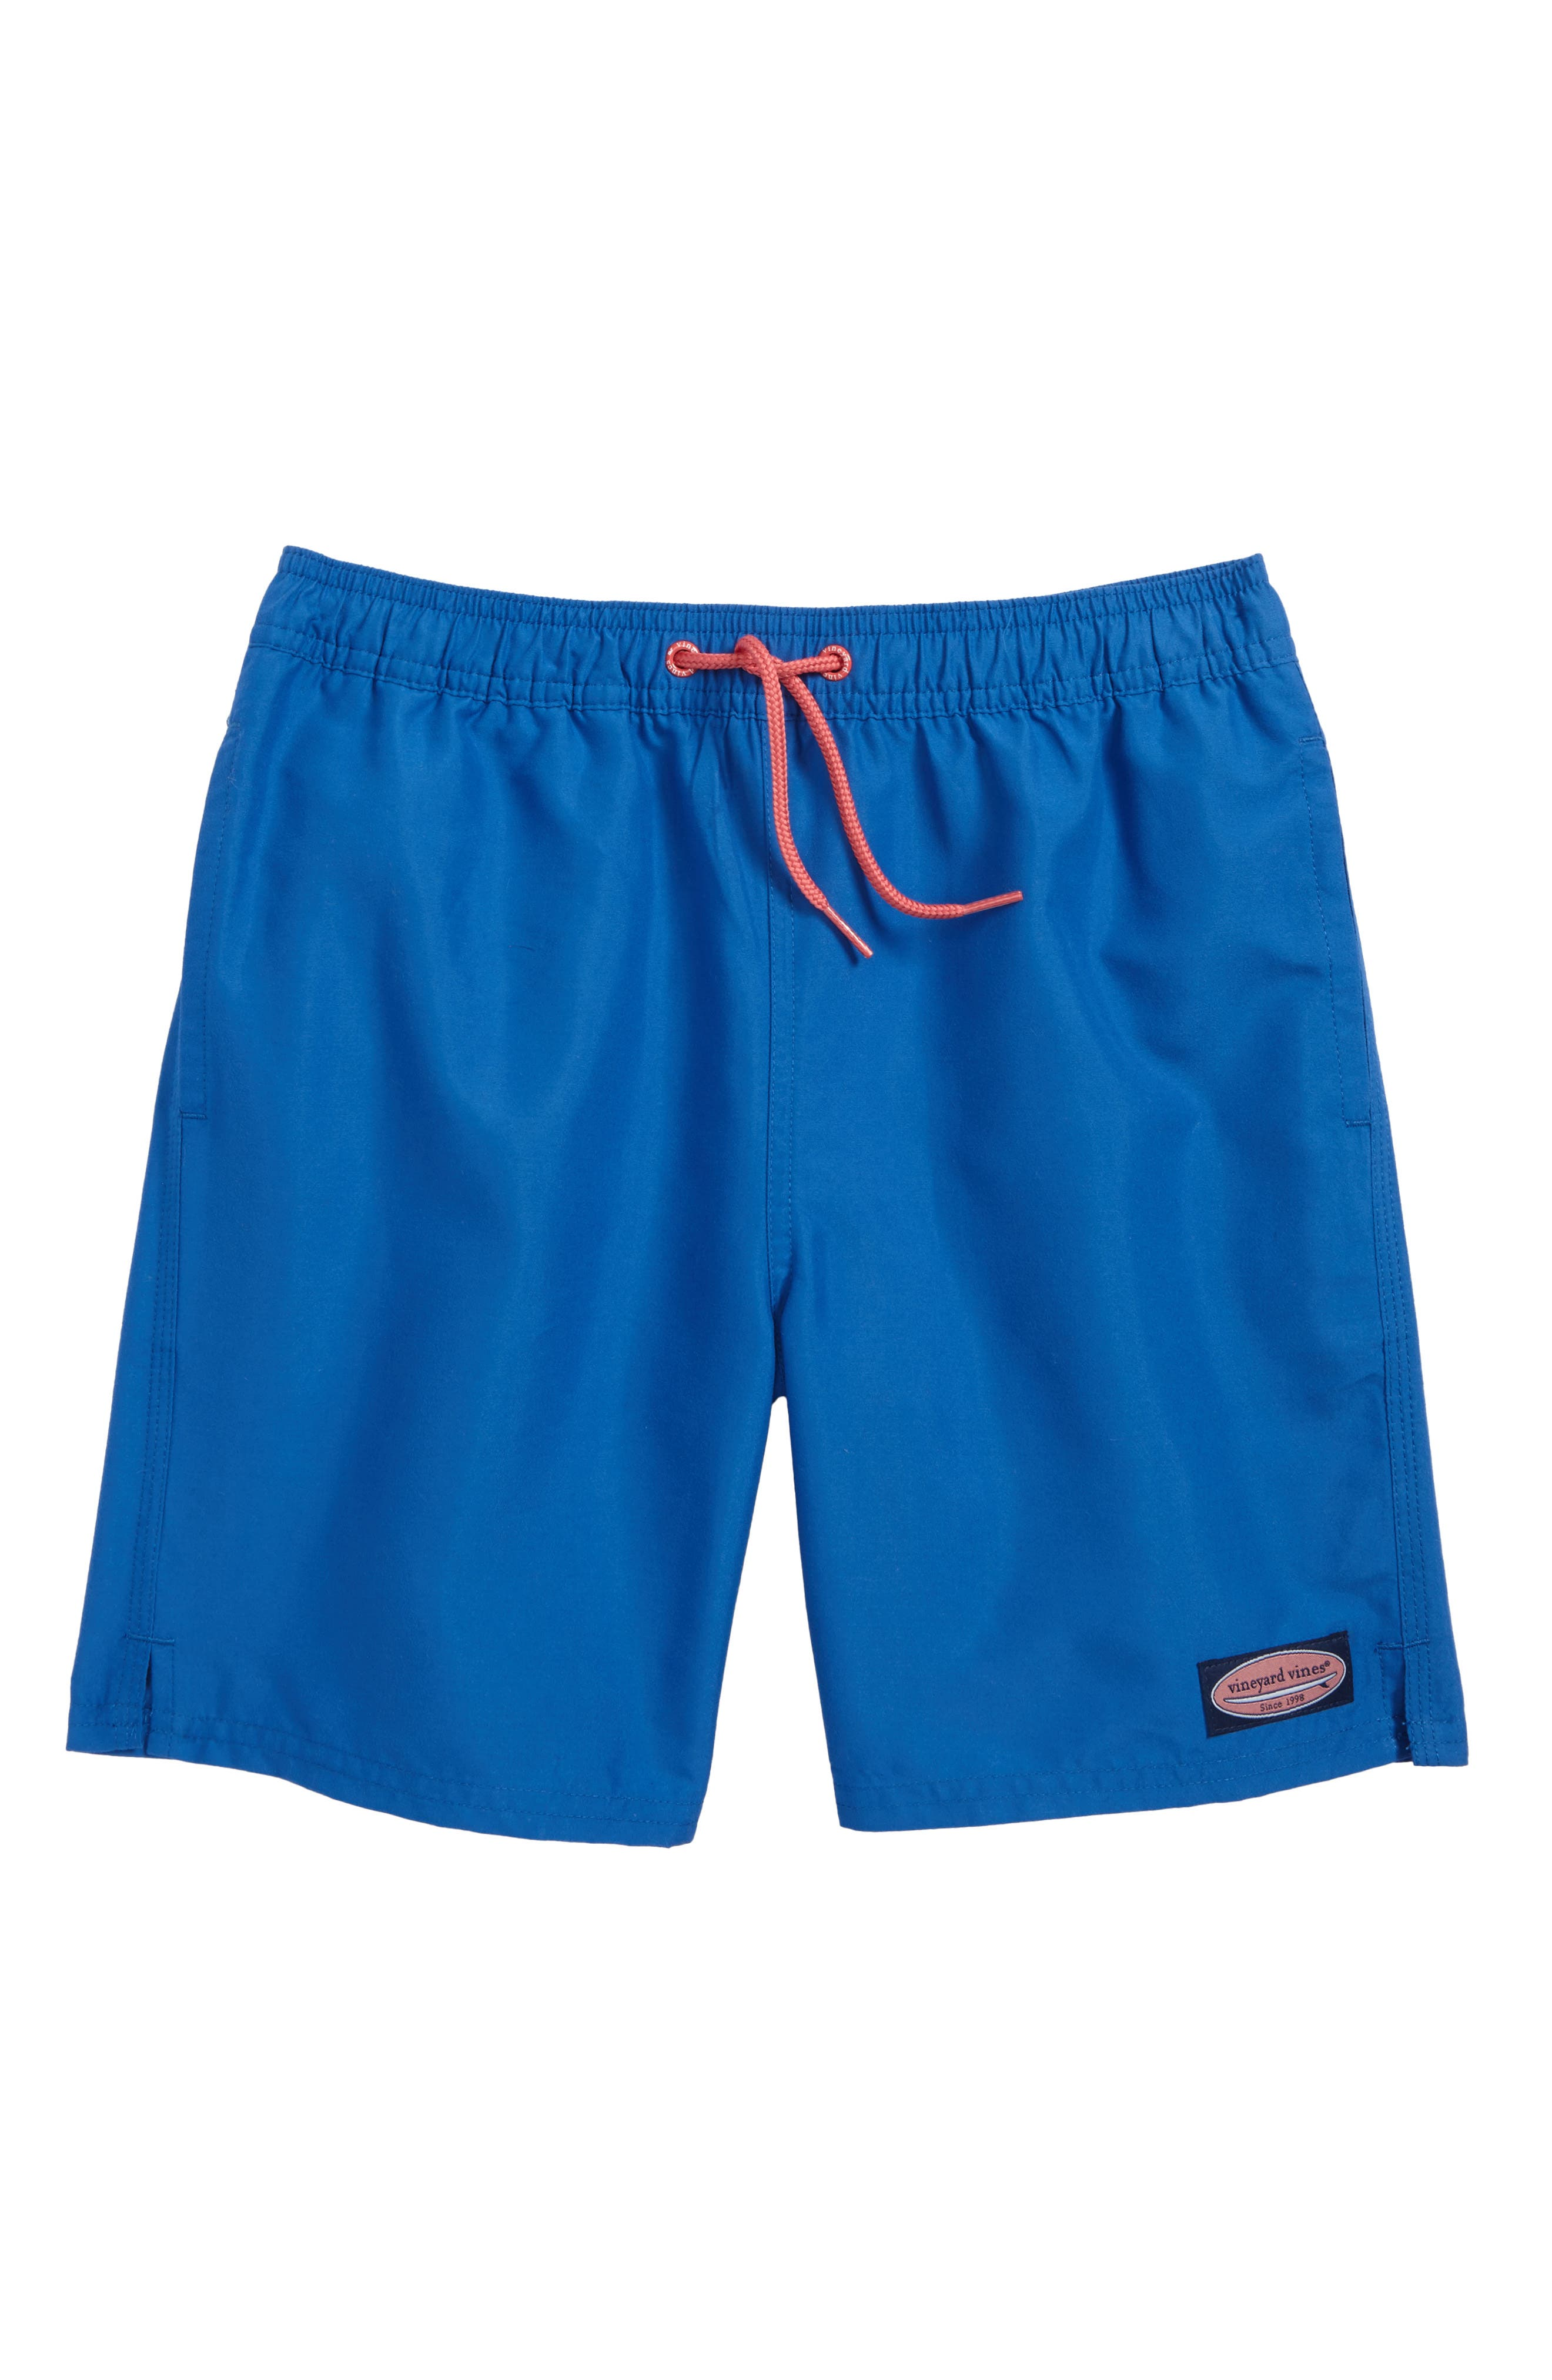 Bungalow Board Shorts,                             Main thumbnail 1, color,                             413